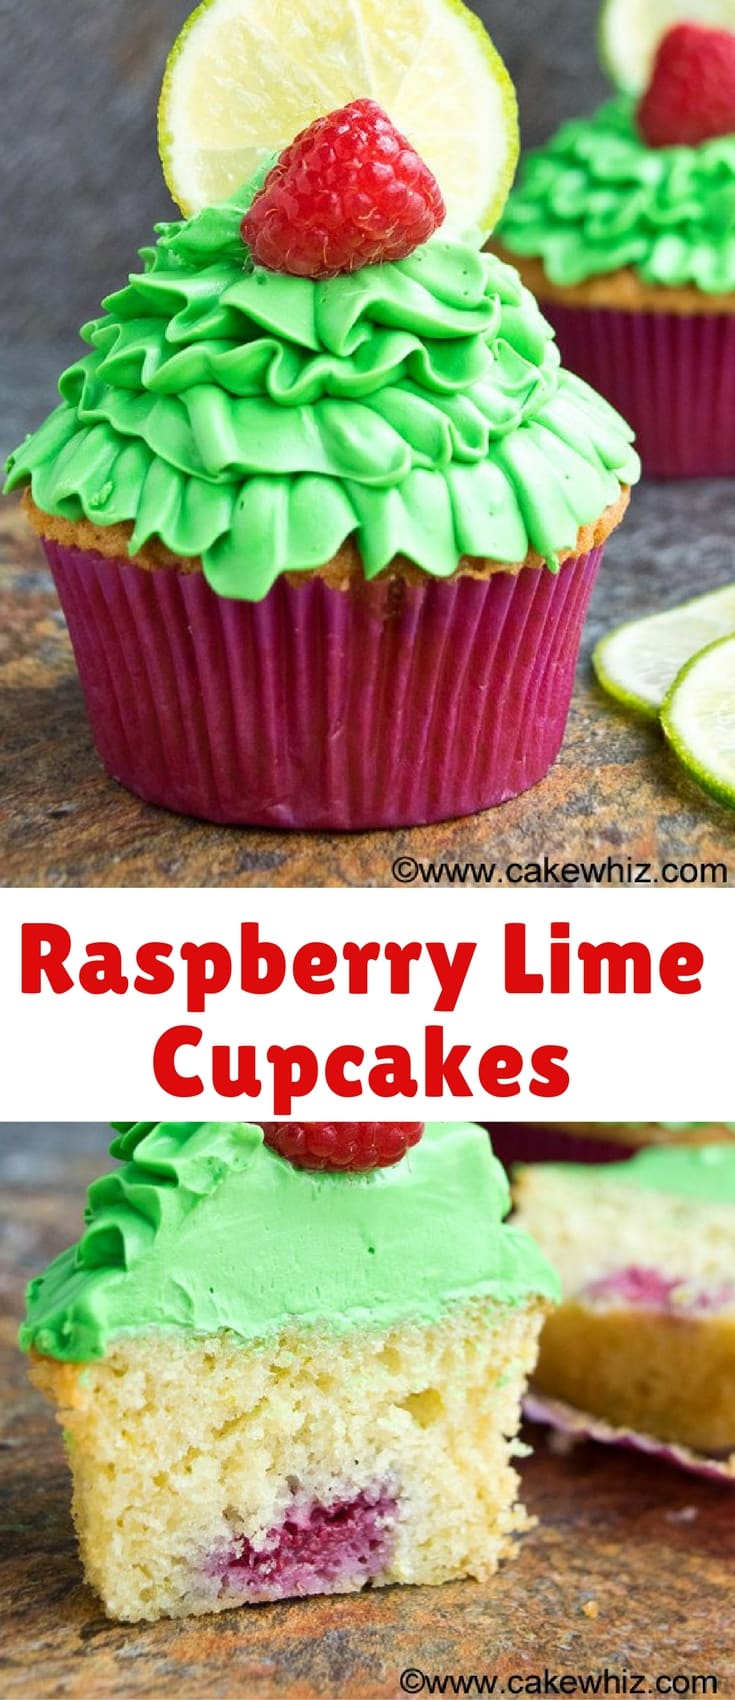 These easy and buttery raspberry lime cupcakes with lime cream cheese frosting are made from scratch. They even have a fresh raspberry stuffed inside them.